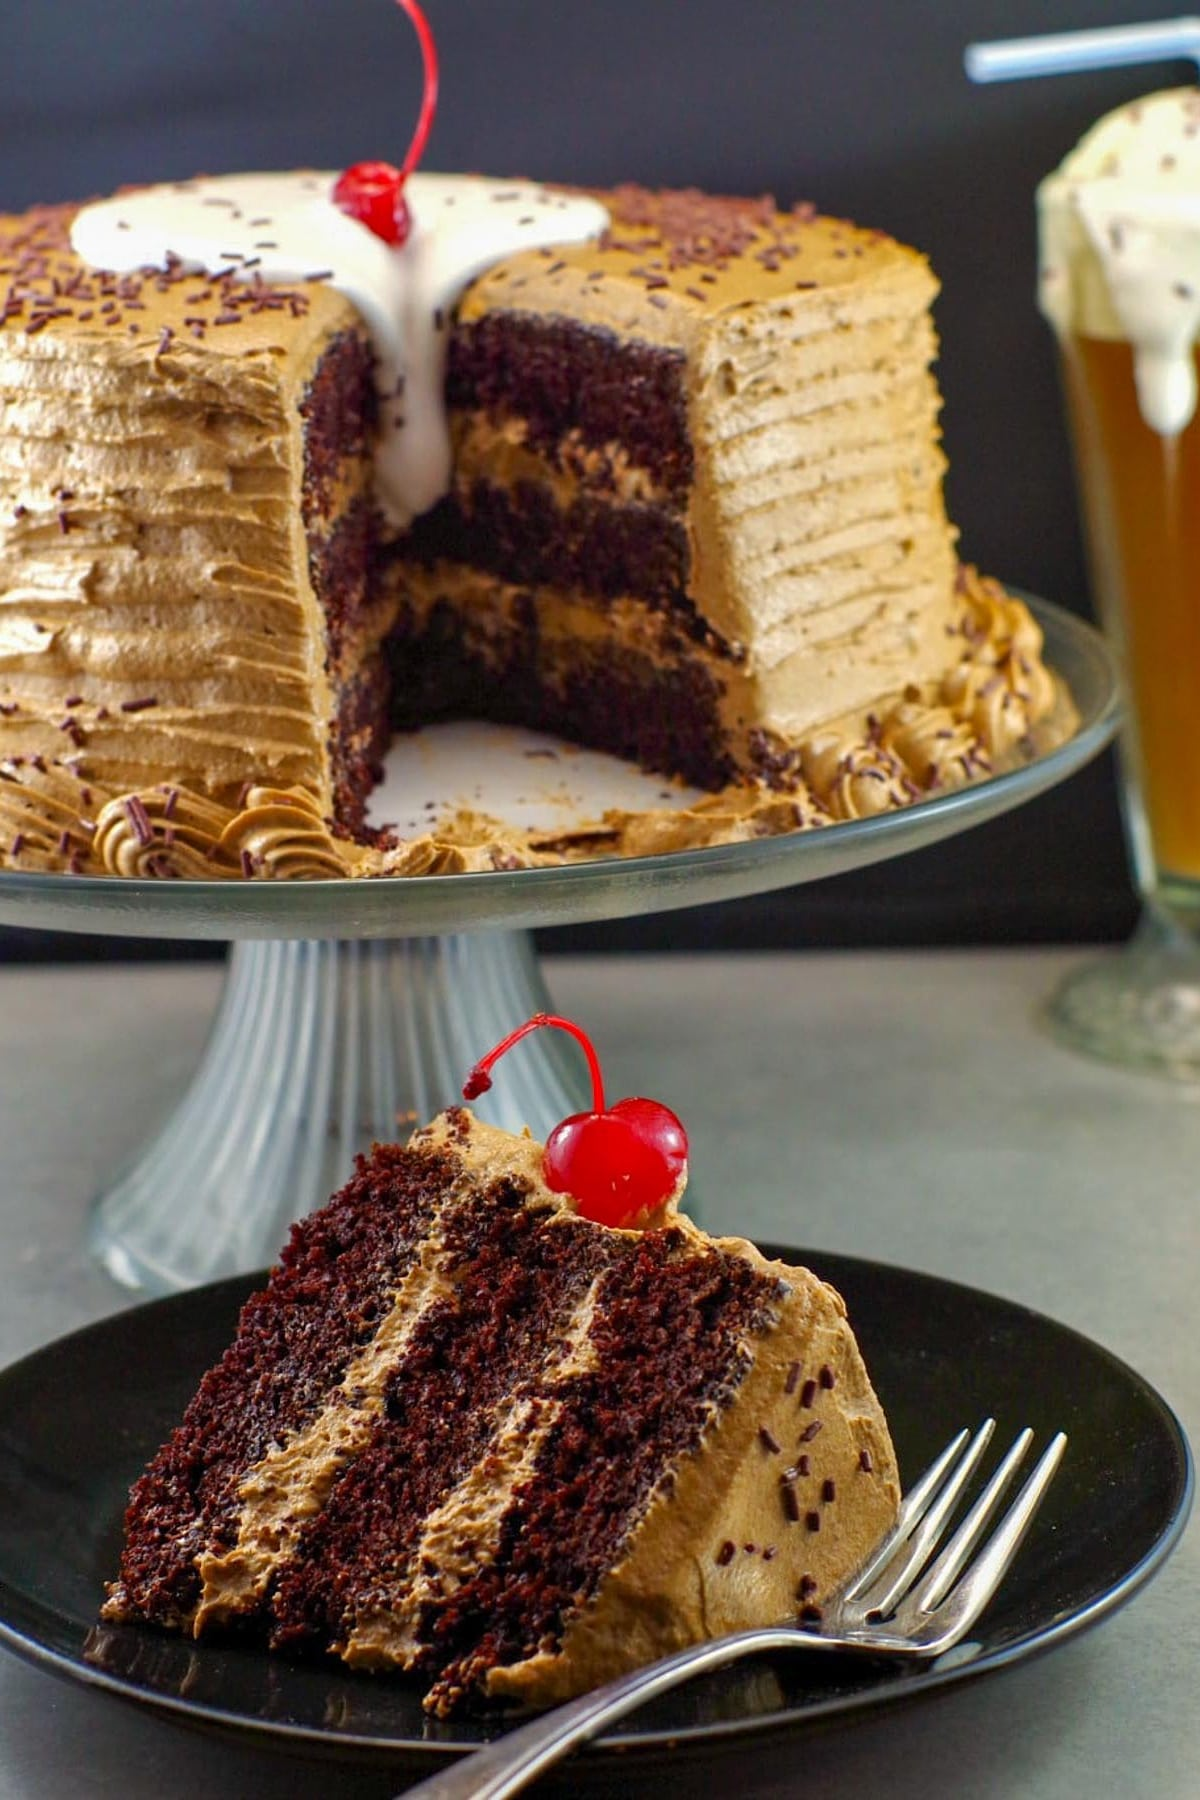 piece of root beer float cake in foreground with remainder of cake in background